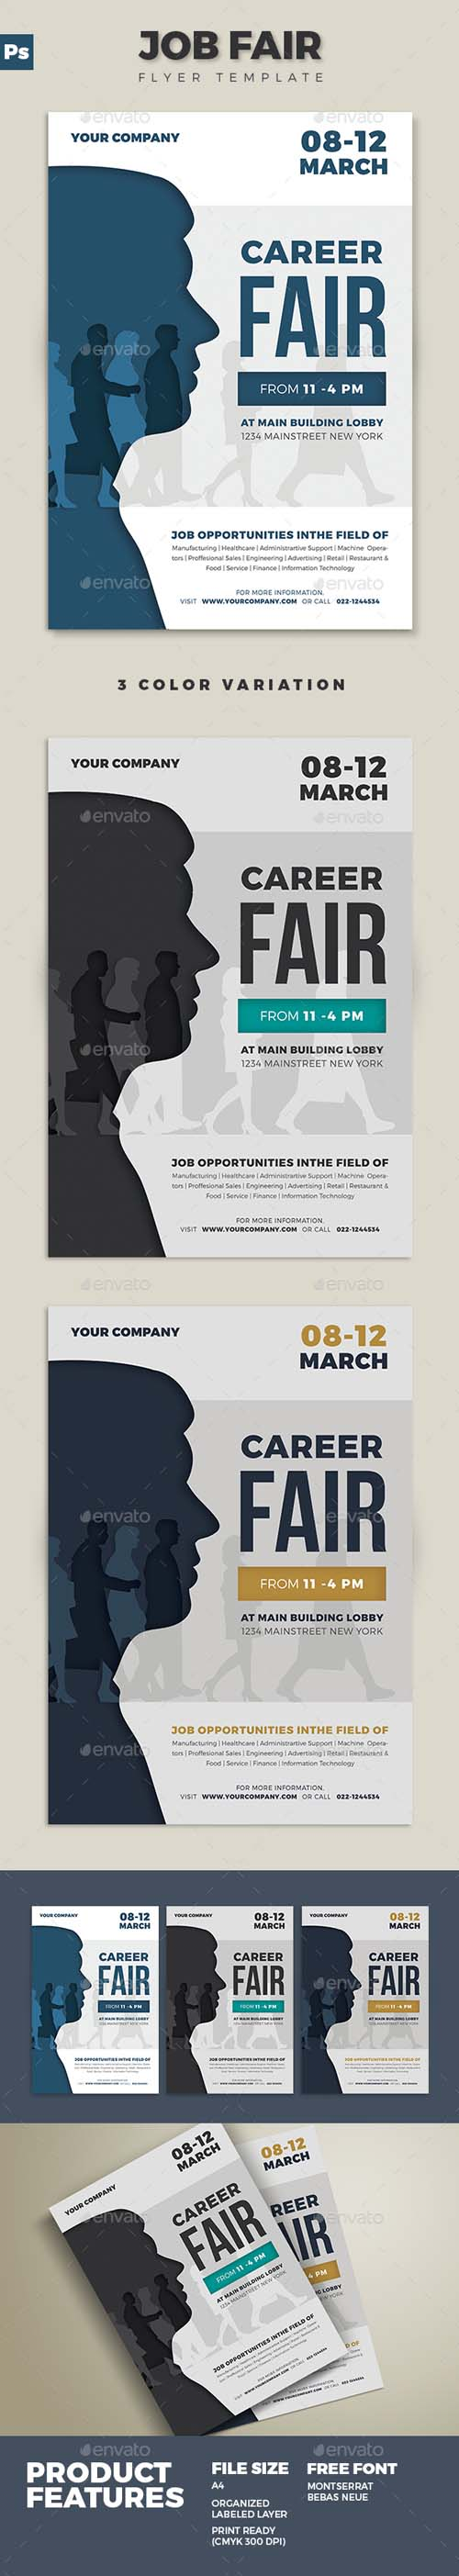 Job Fair Flyer 02 19531605